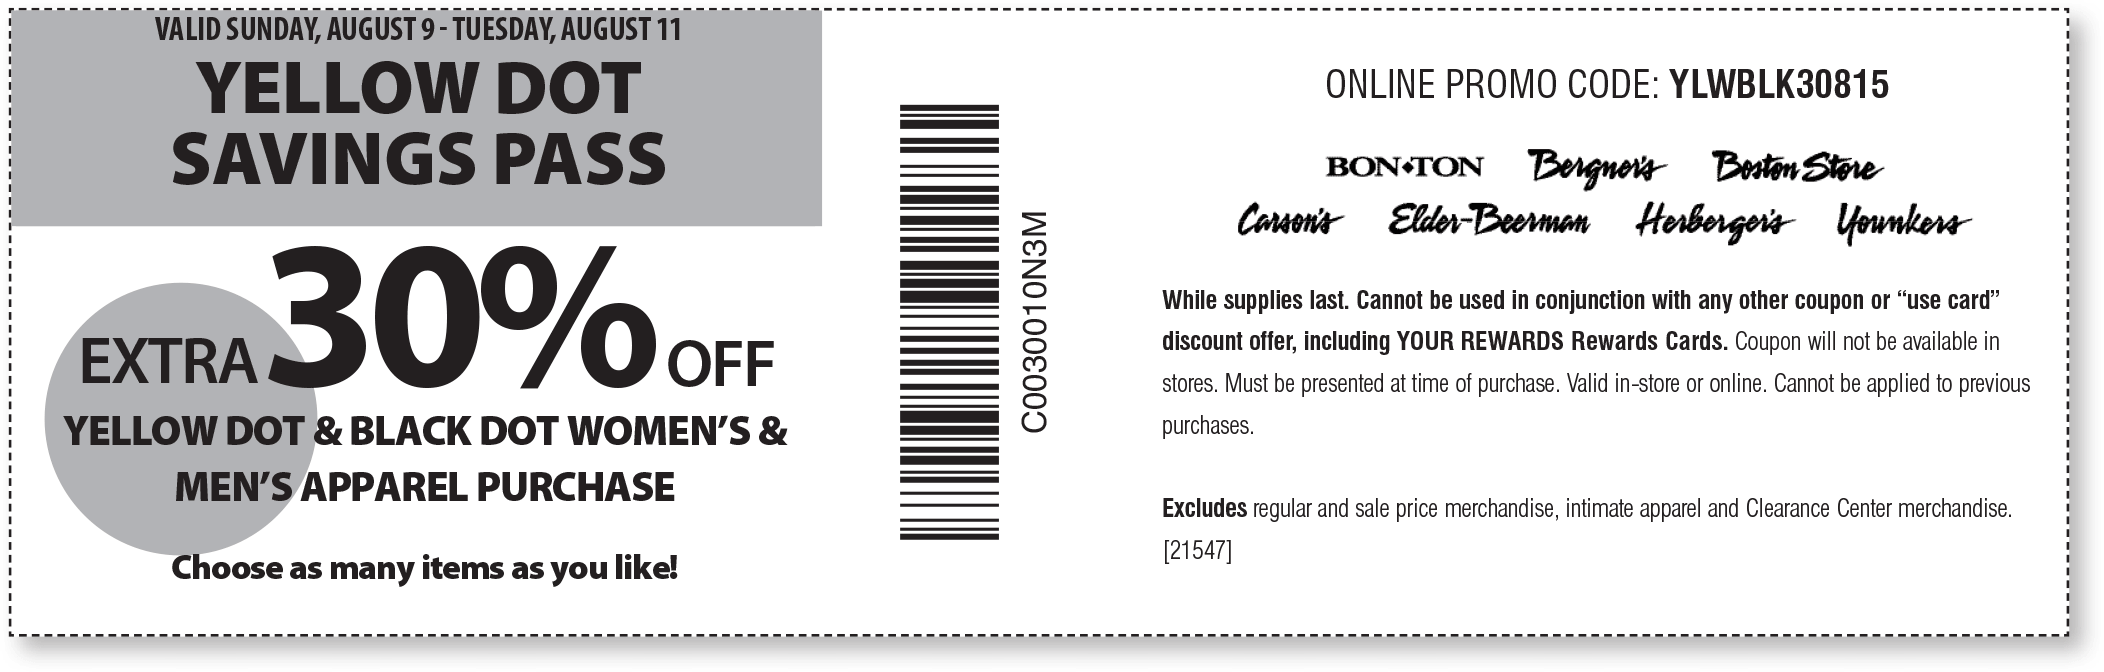 Carsons Coupon January 2017 Extra 30% off yellow dot at Carsons, Bon Ton & sister stores, or online via promo code YLWBLK30815